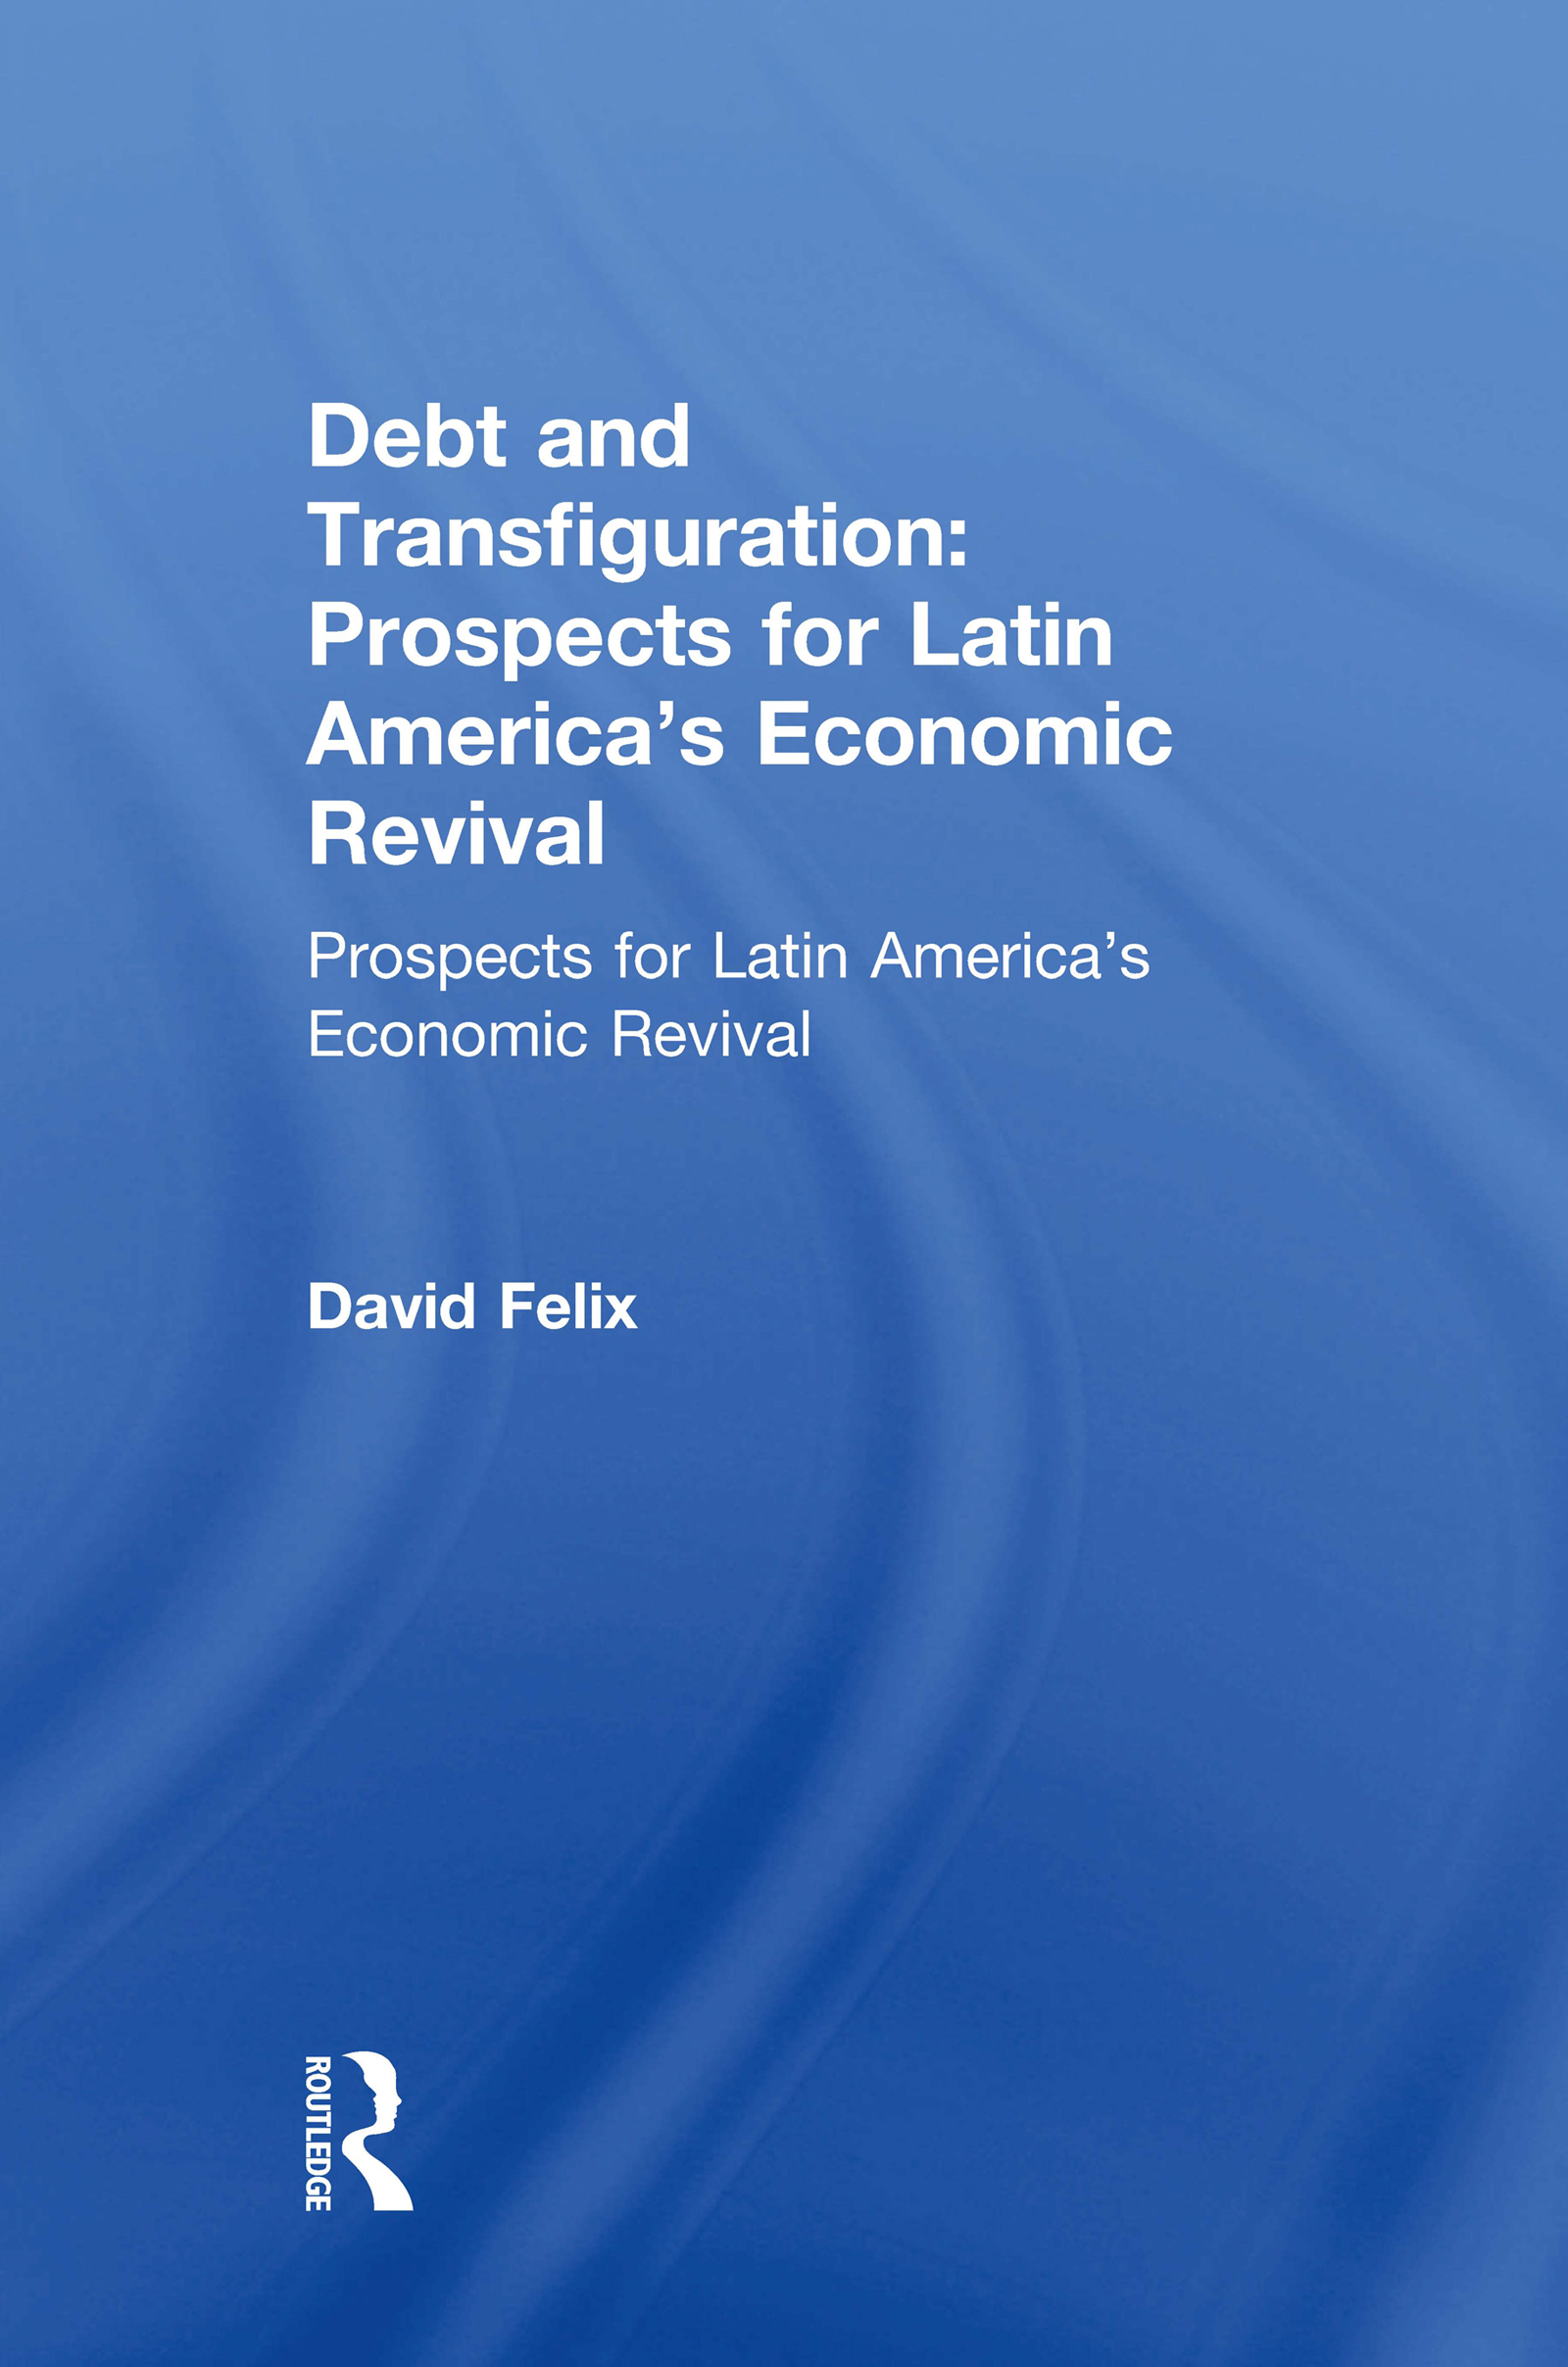 Debt and Transfiguration: Prospects for Latin America's Economic Revival: Prospects for Latin America's Economic Revival, 1st Edition (Hardback) book cover